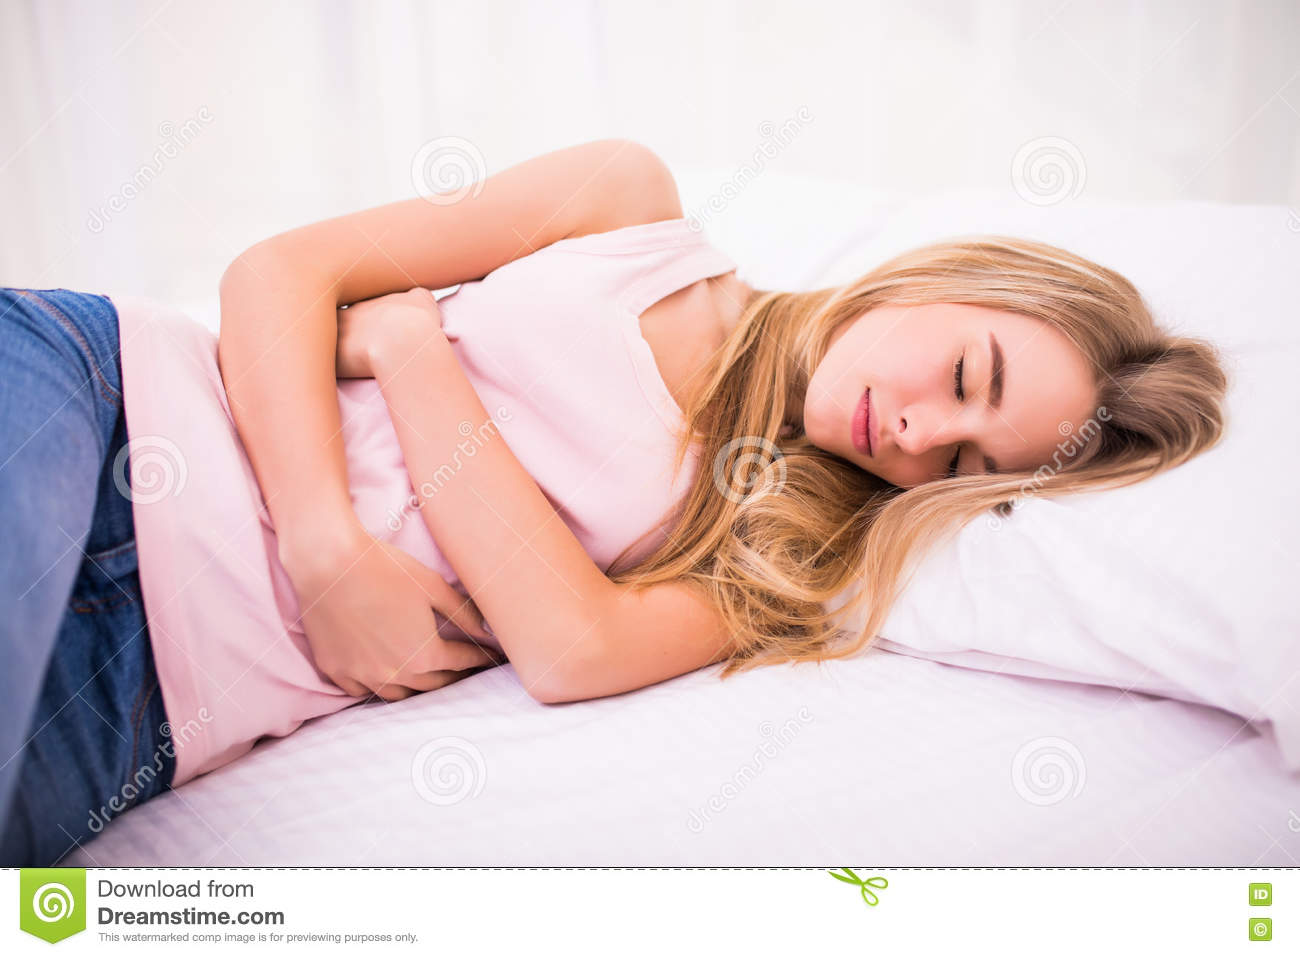 Woman sitting on bed and suffering from abdominal pain